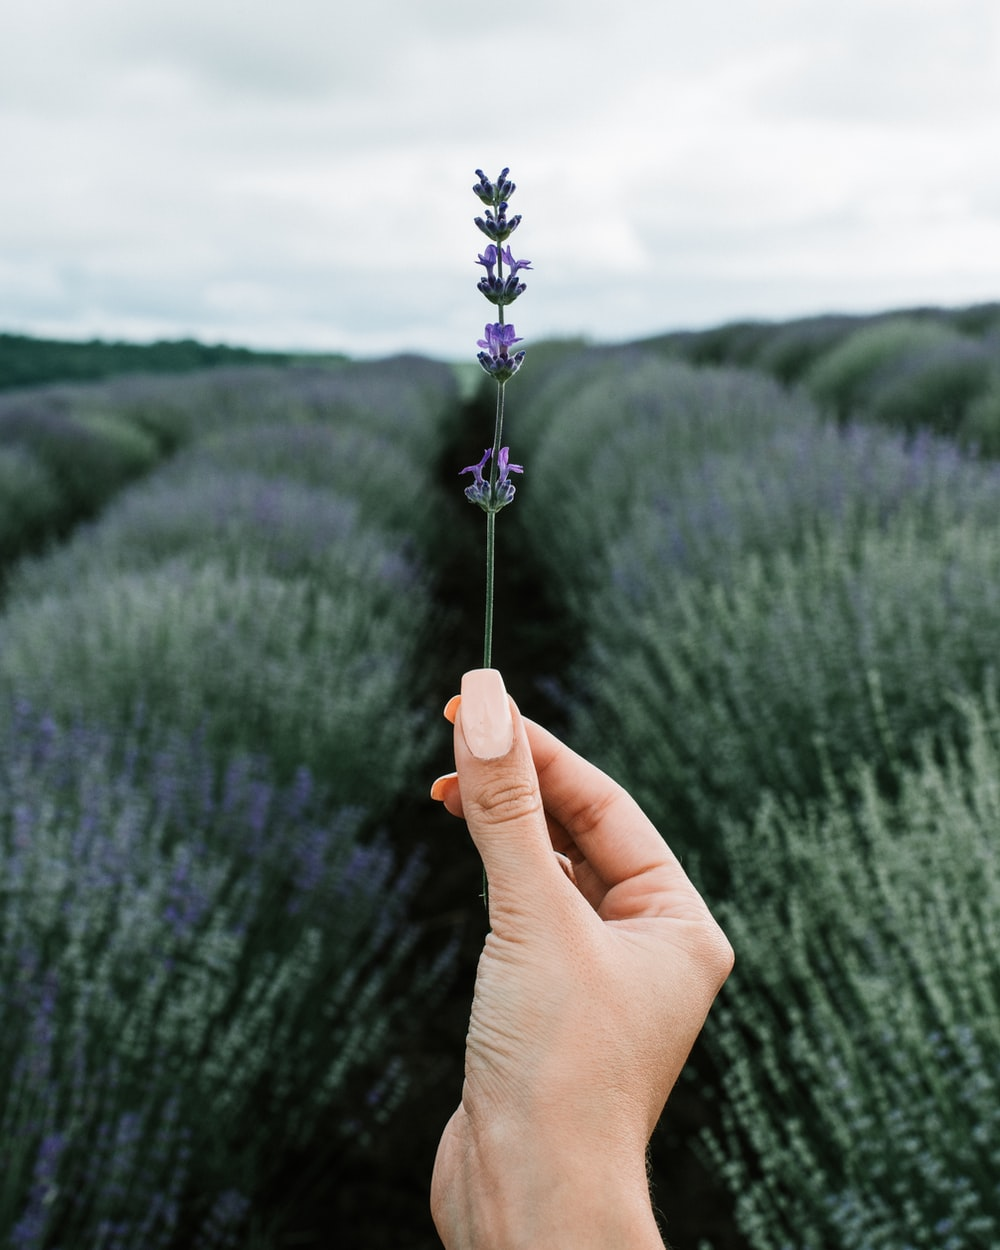 person holding purple flower during daytime